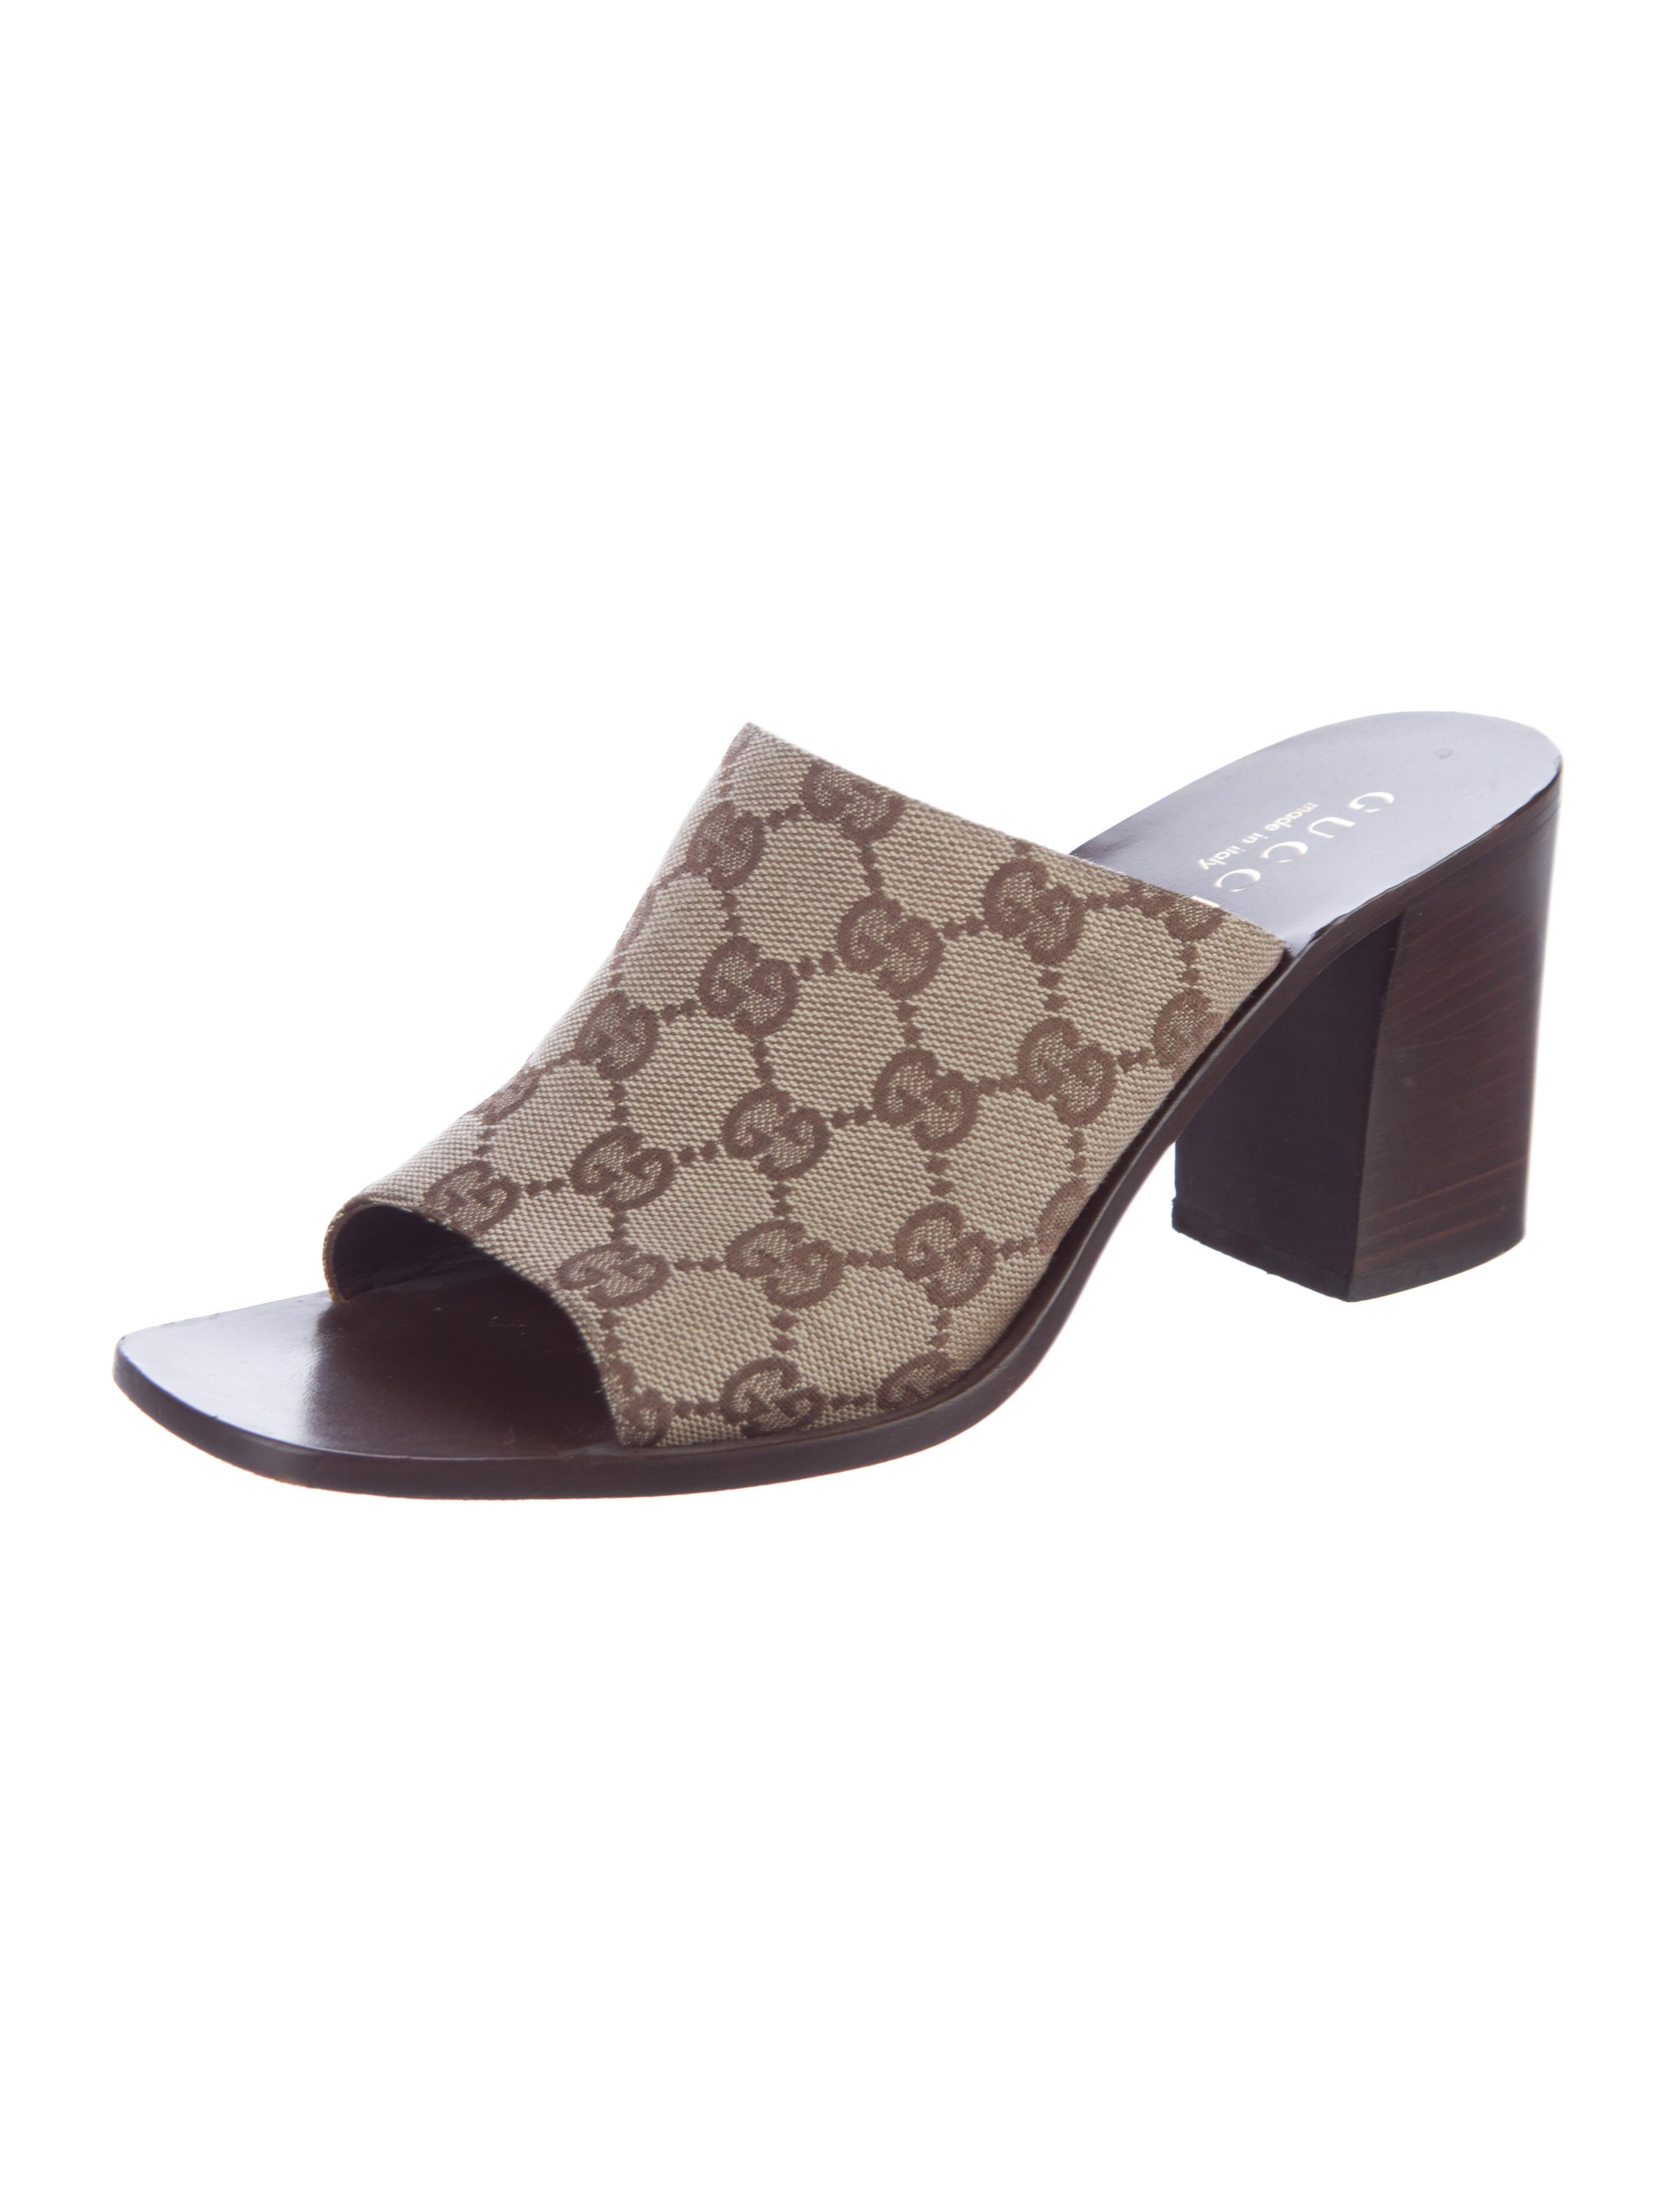 gucci gg canvas slide sandals shoes guc131891 the